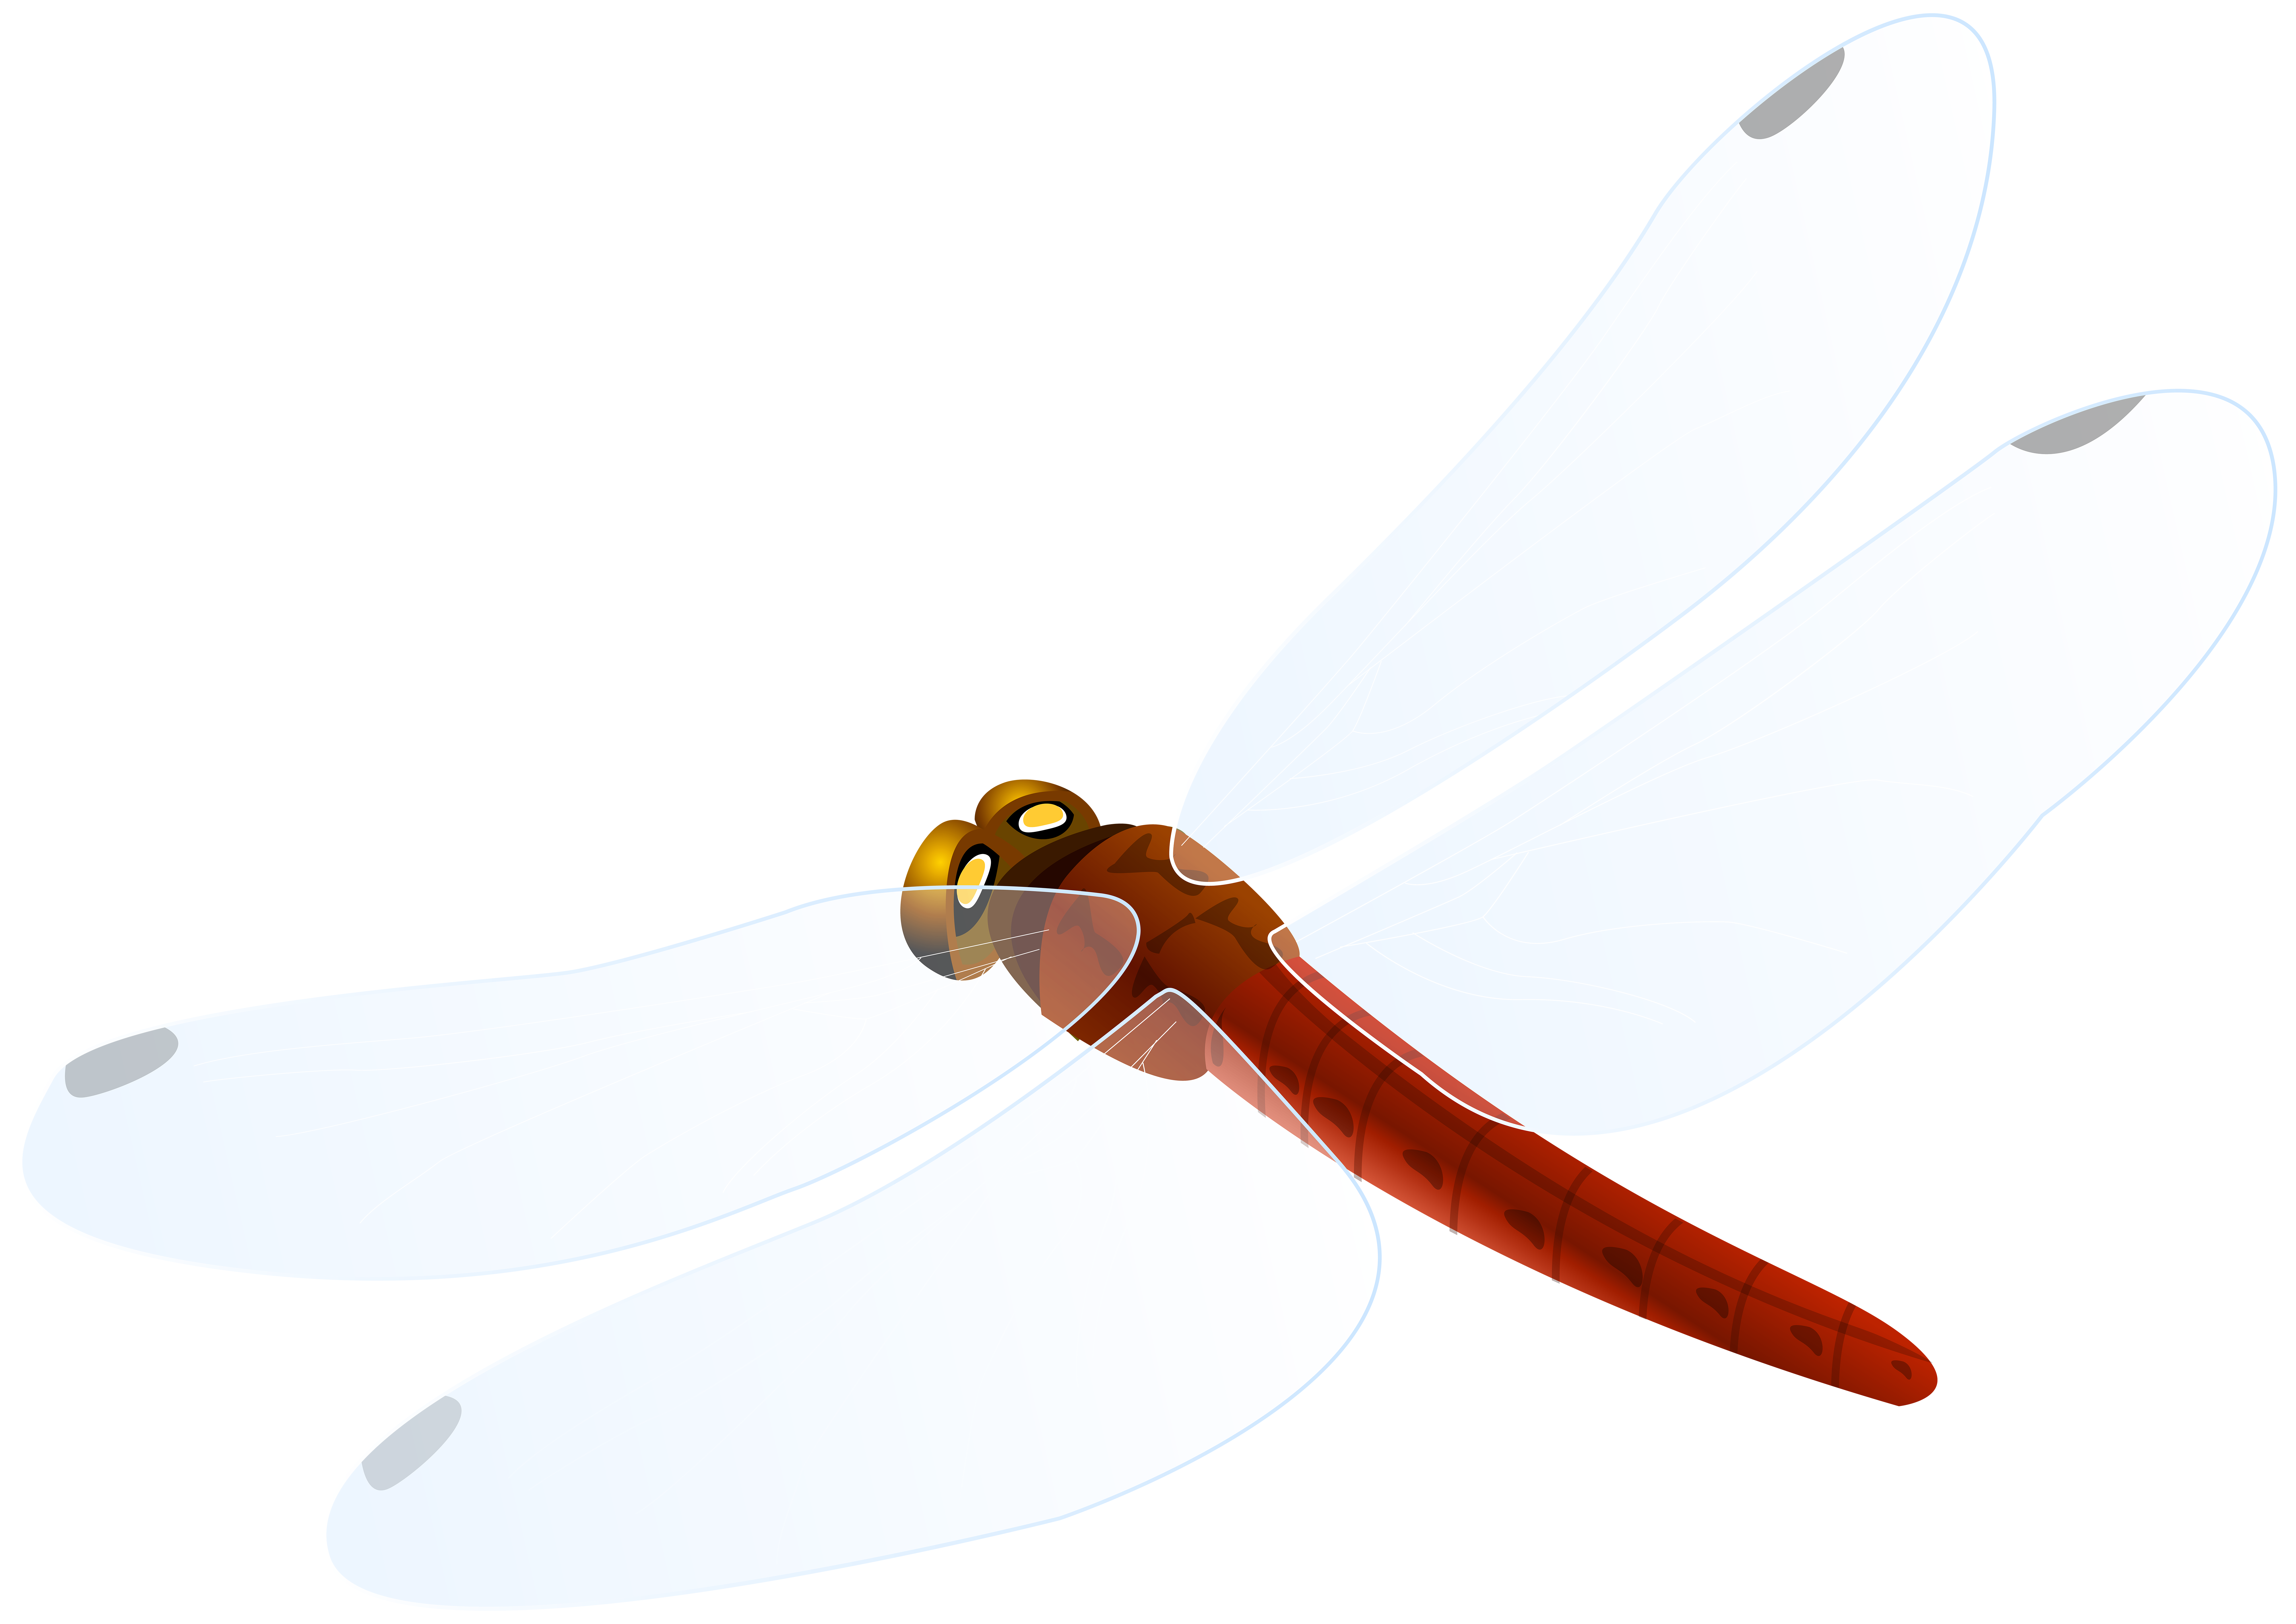 Png best web. Dragonfly clipart red dragonfly